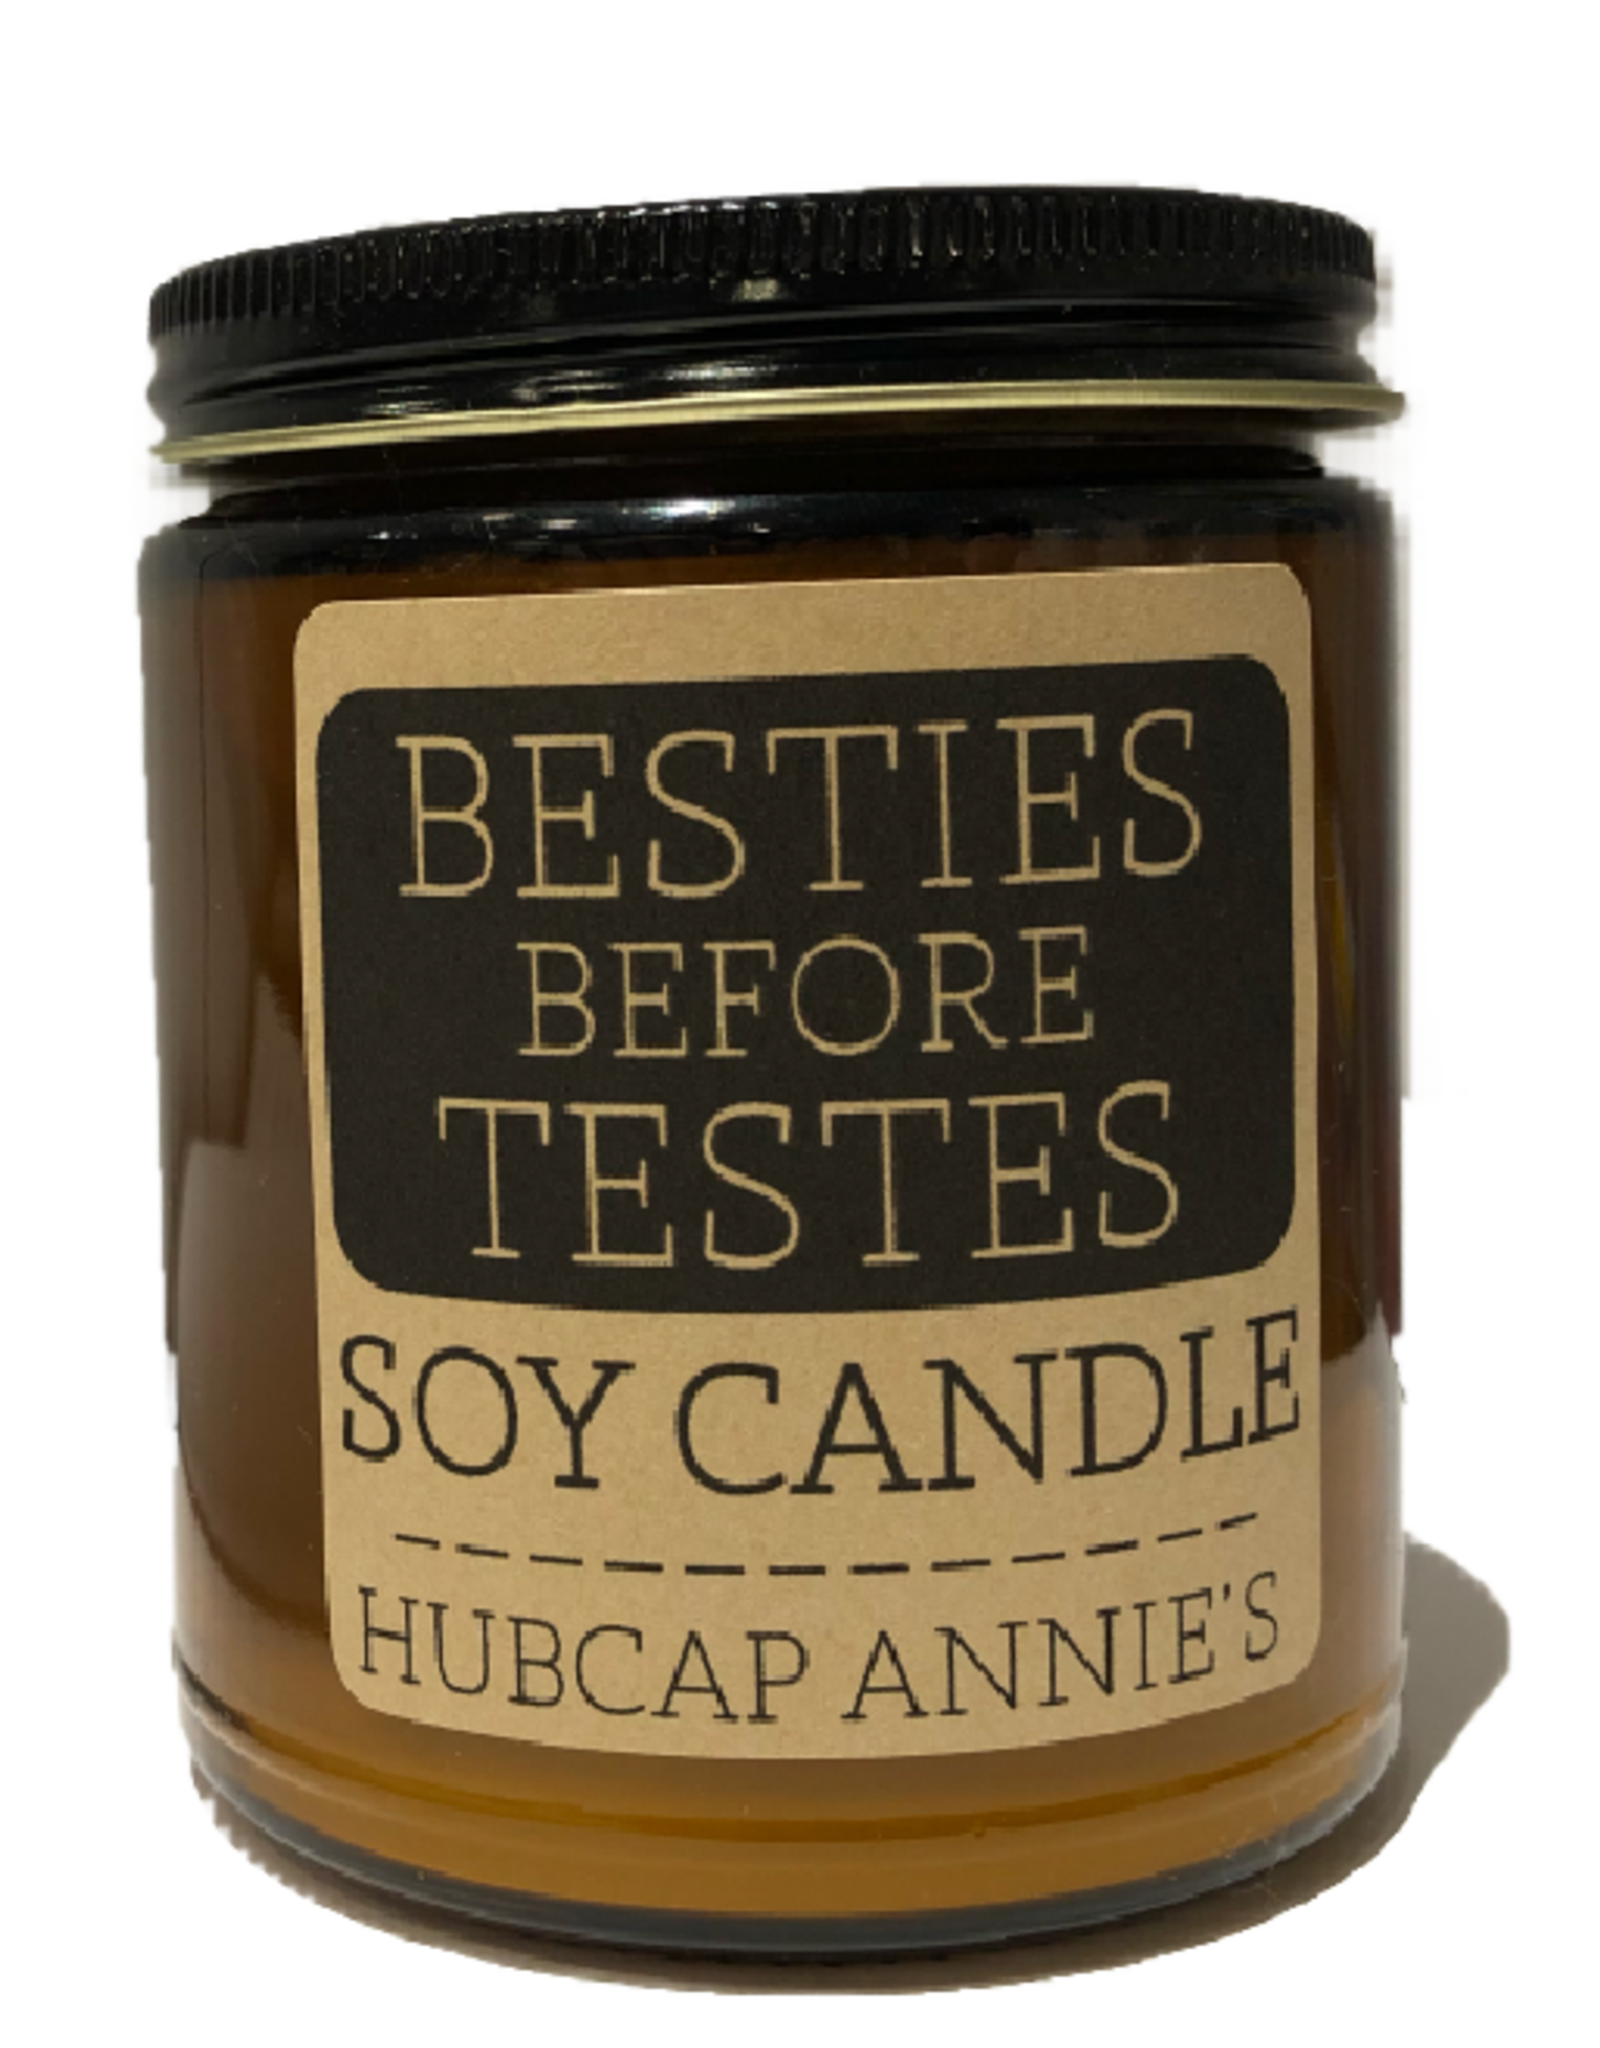 Candle - Besties Before Testes